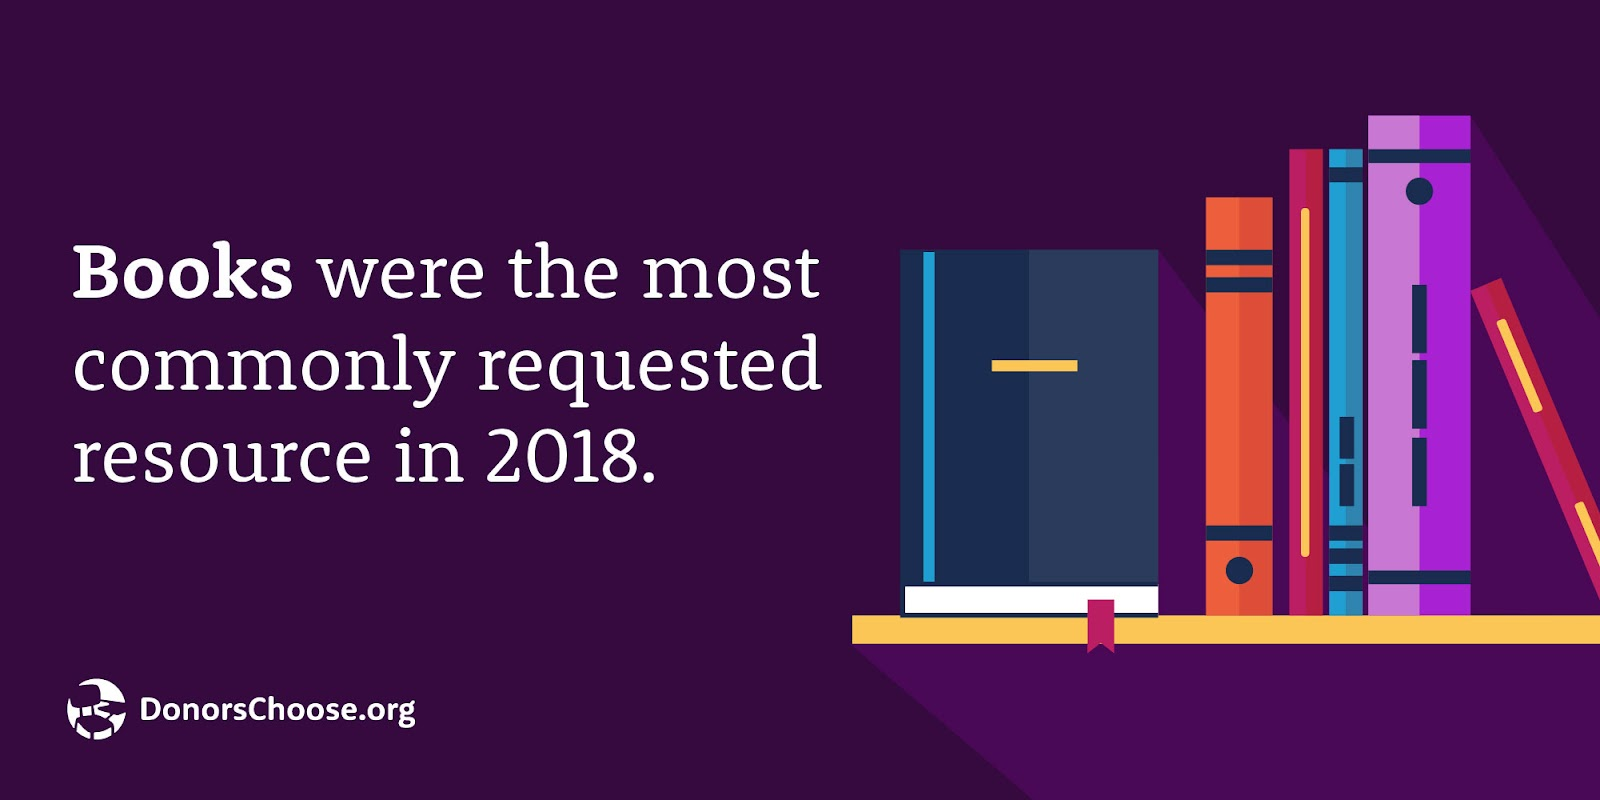 Books were the most commonly requested resource in 2018.